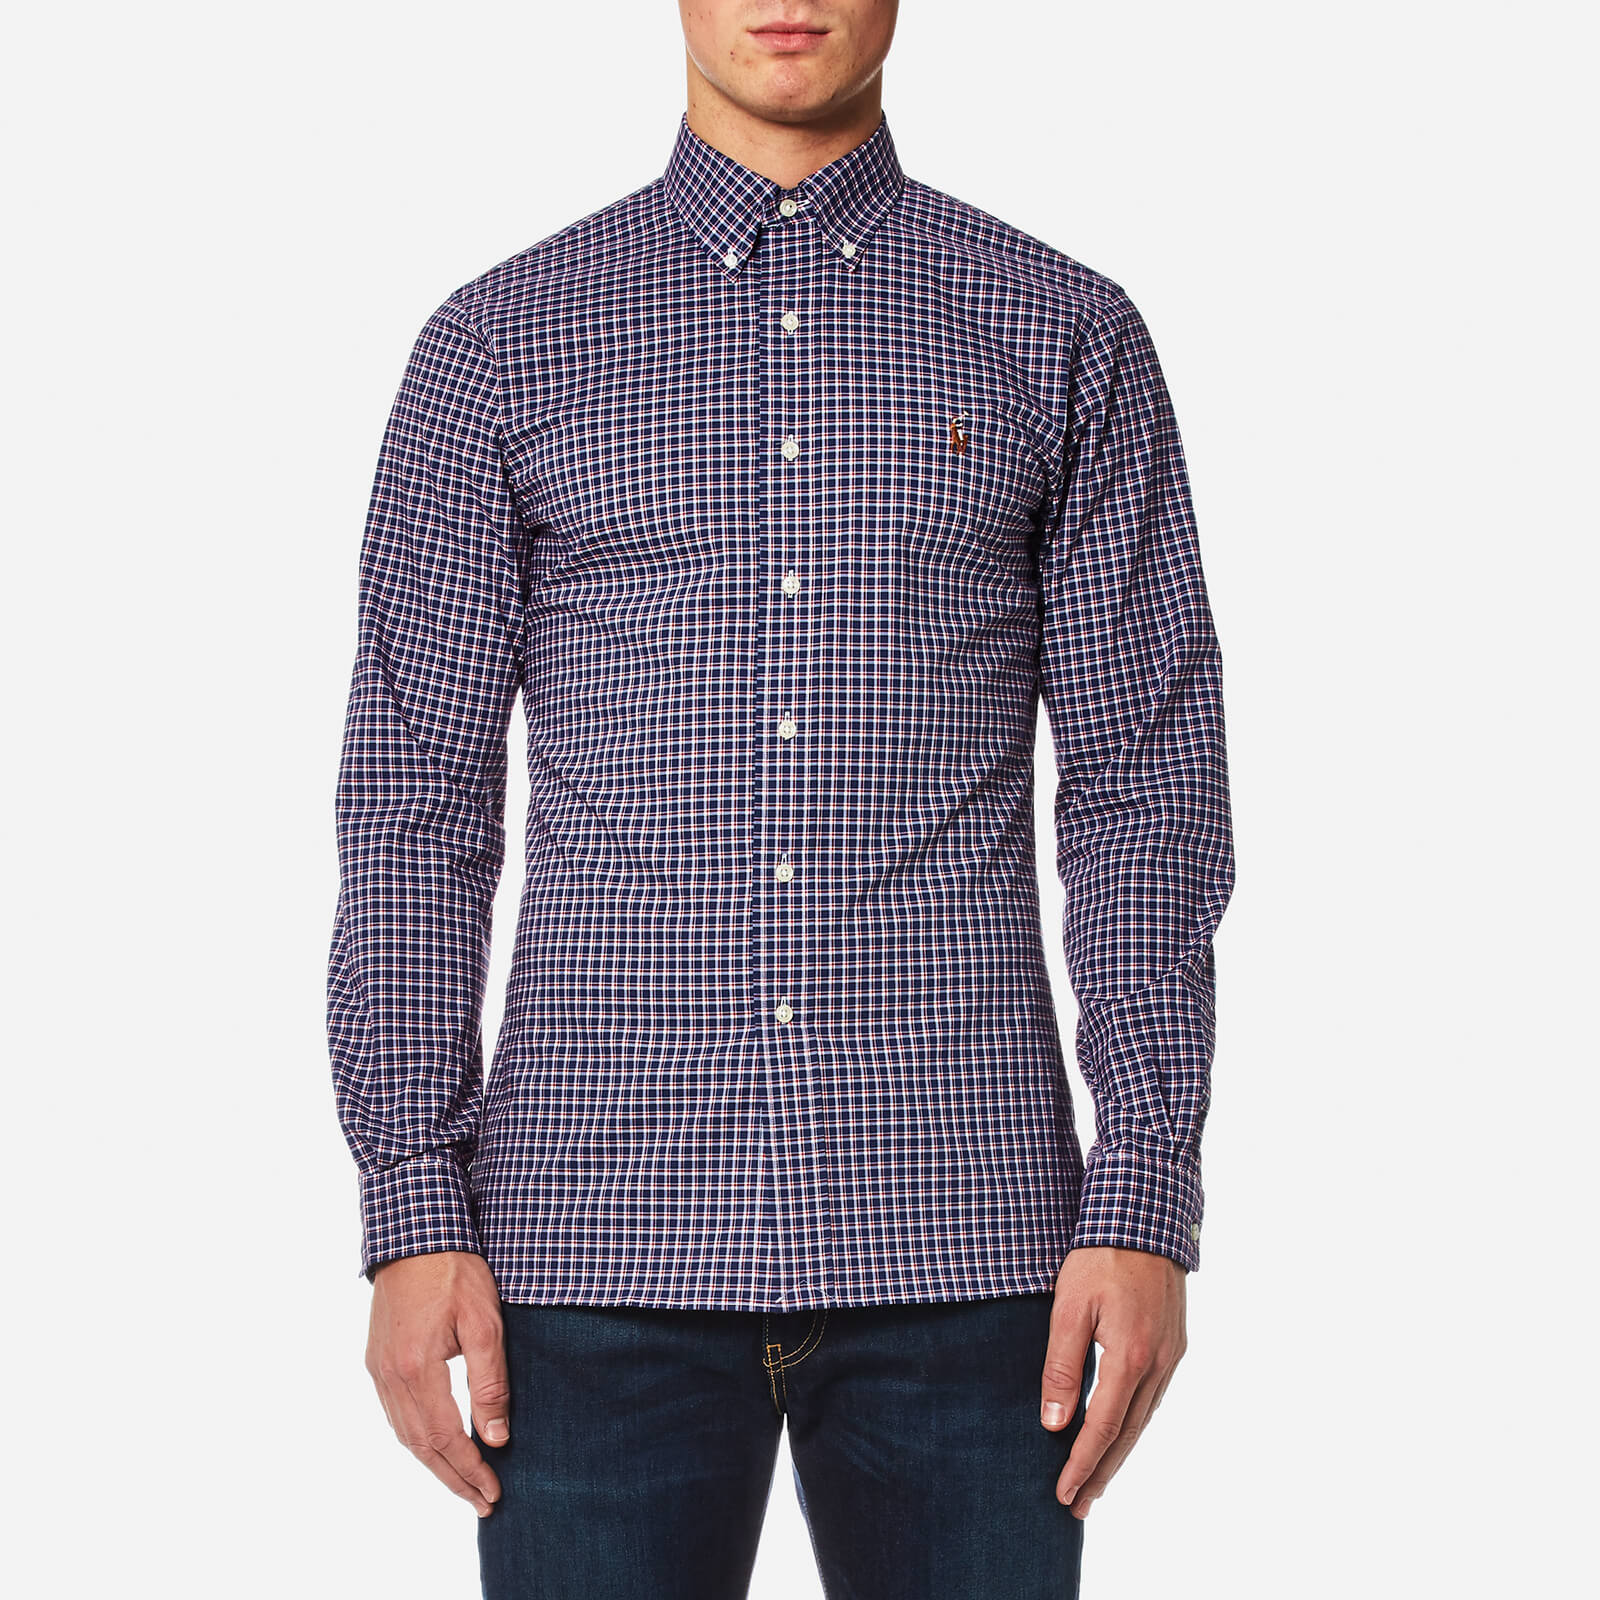 92221417 Polo Ralph Lauren Men's Slim Fit Poplin Check Shirt - Navy/Red - Free UK  Delivery over £50